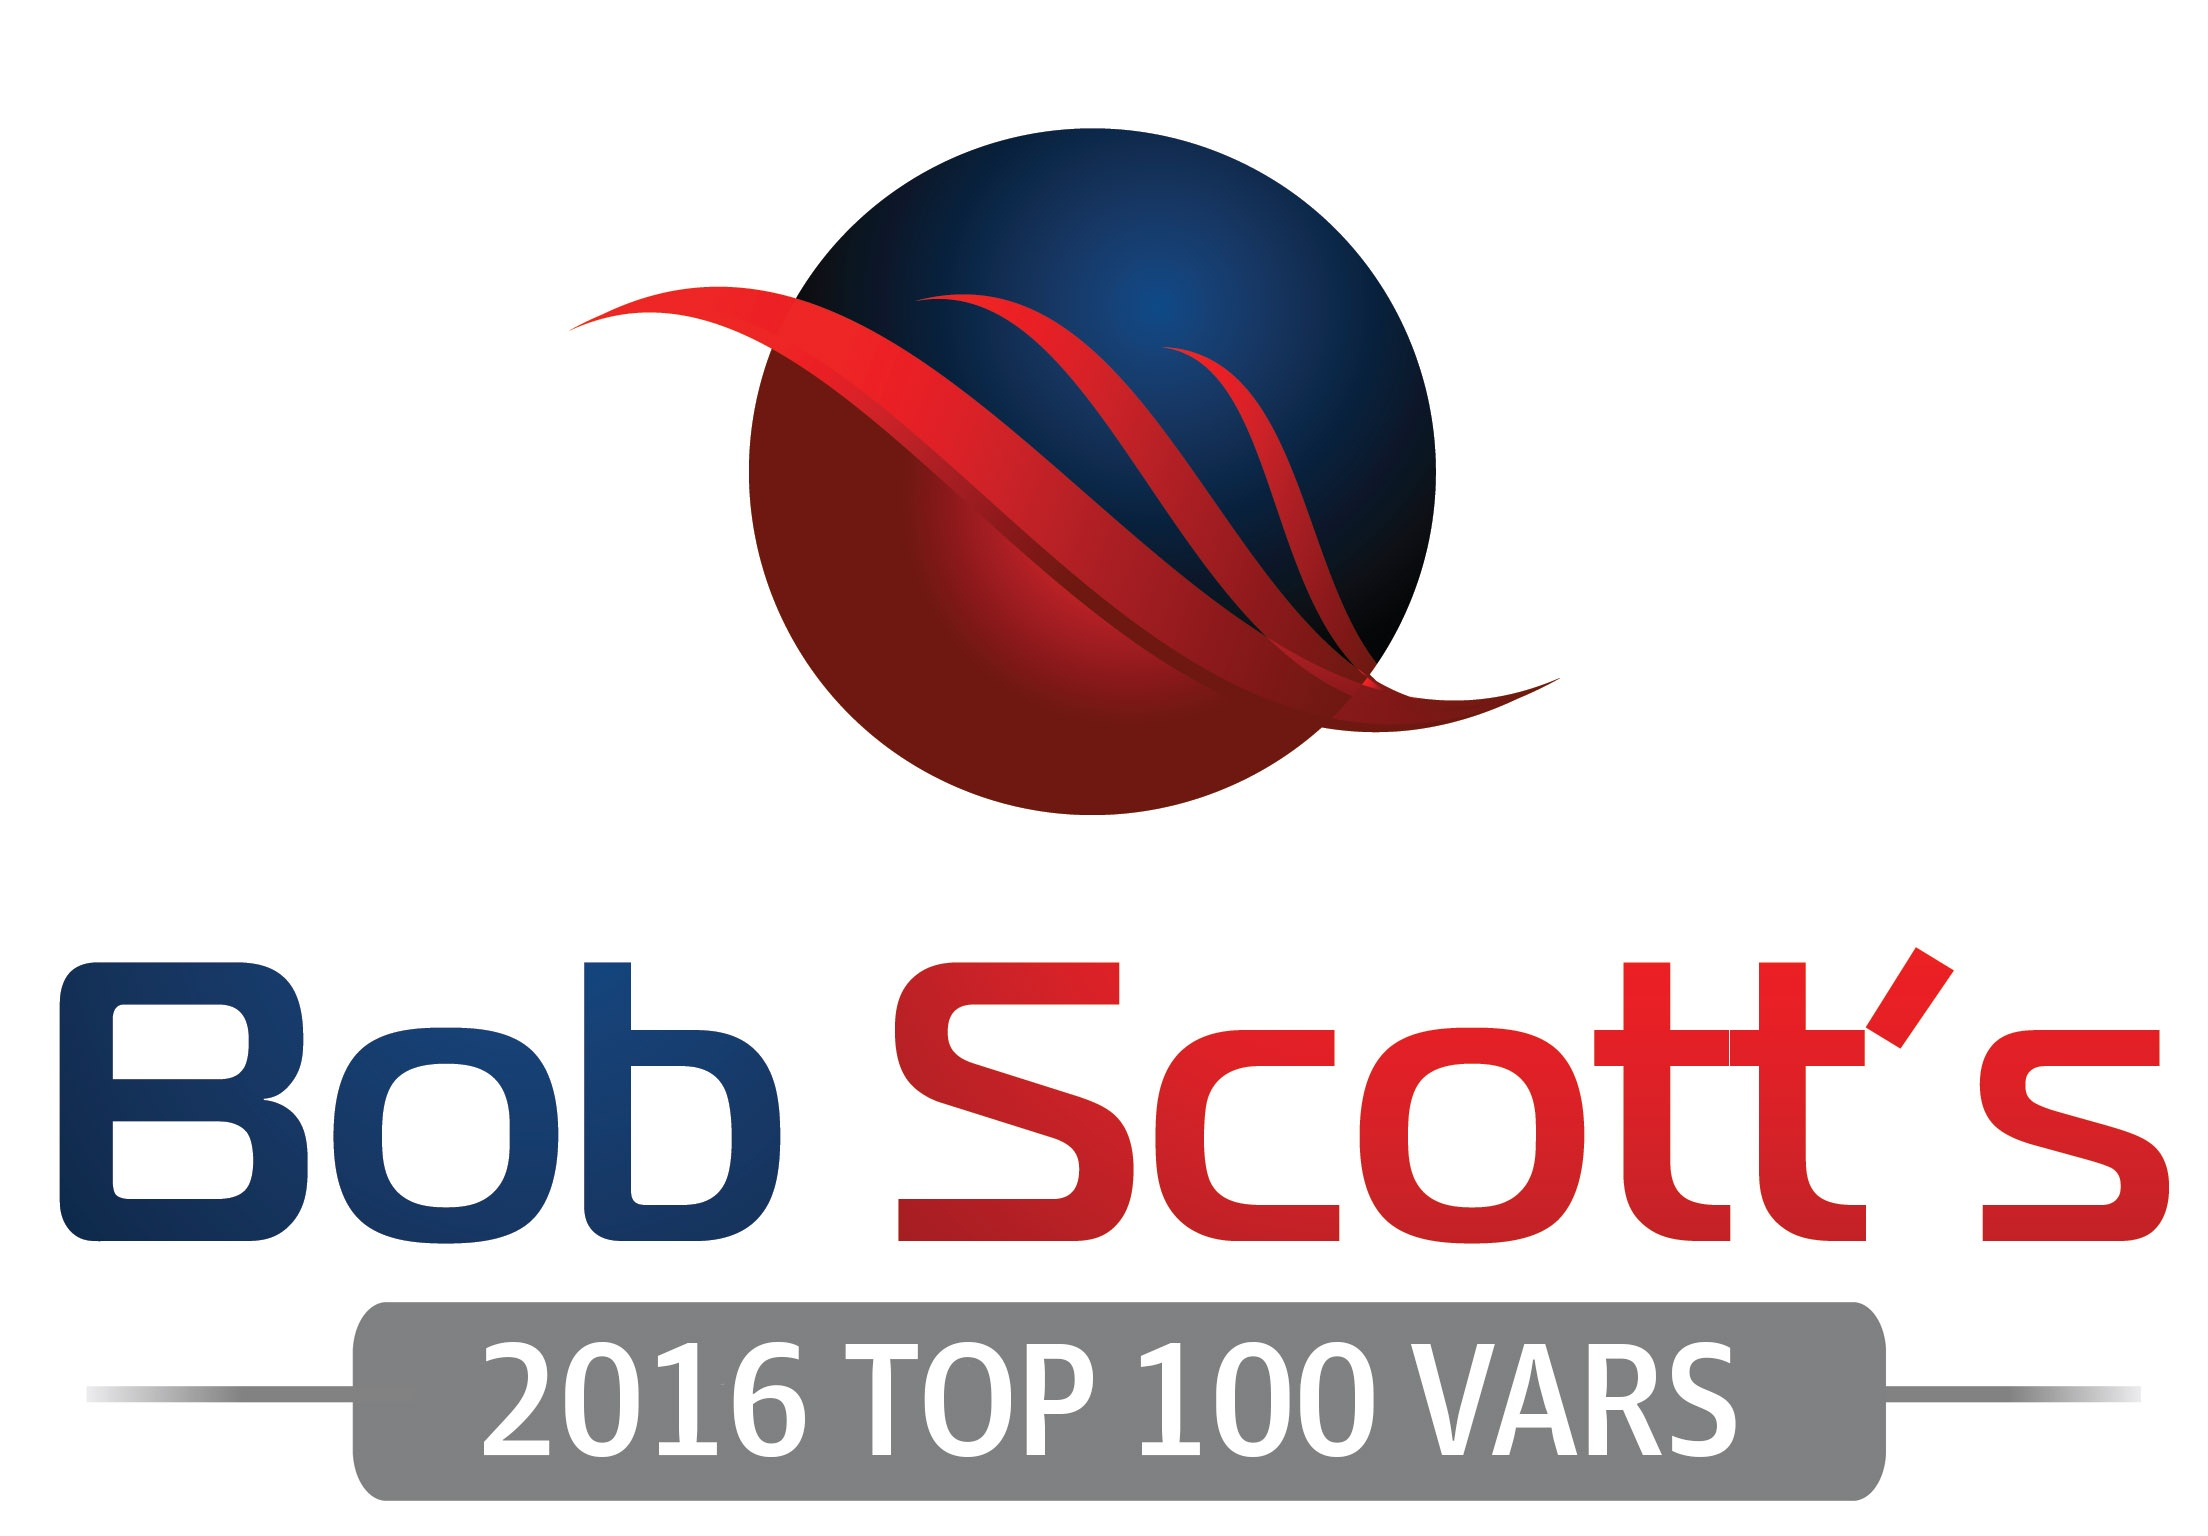 AcctTwo Named to Bob Scott's Top 100 VARs List for 2016